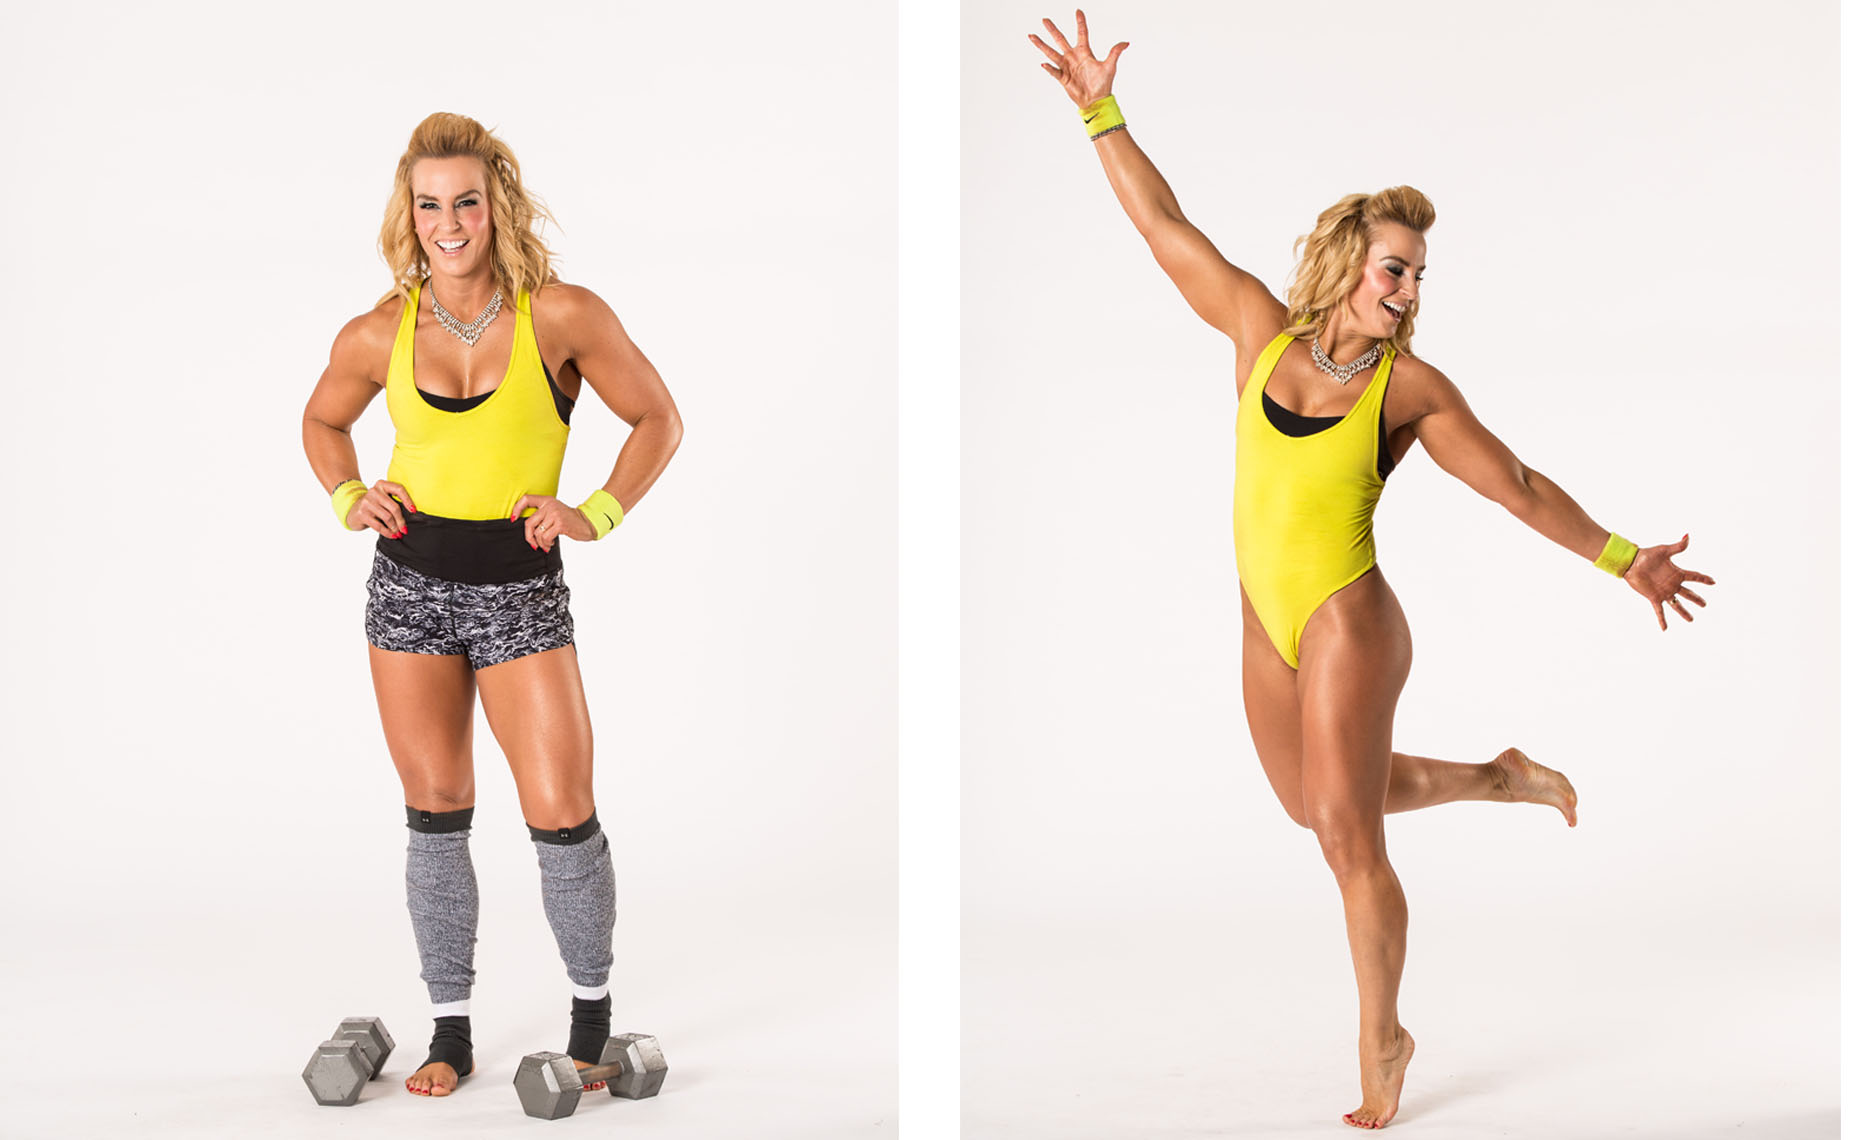 Philadelphia Photographer Fitness Model Portrait Jen Sinkler